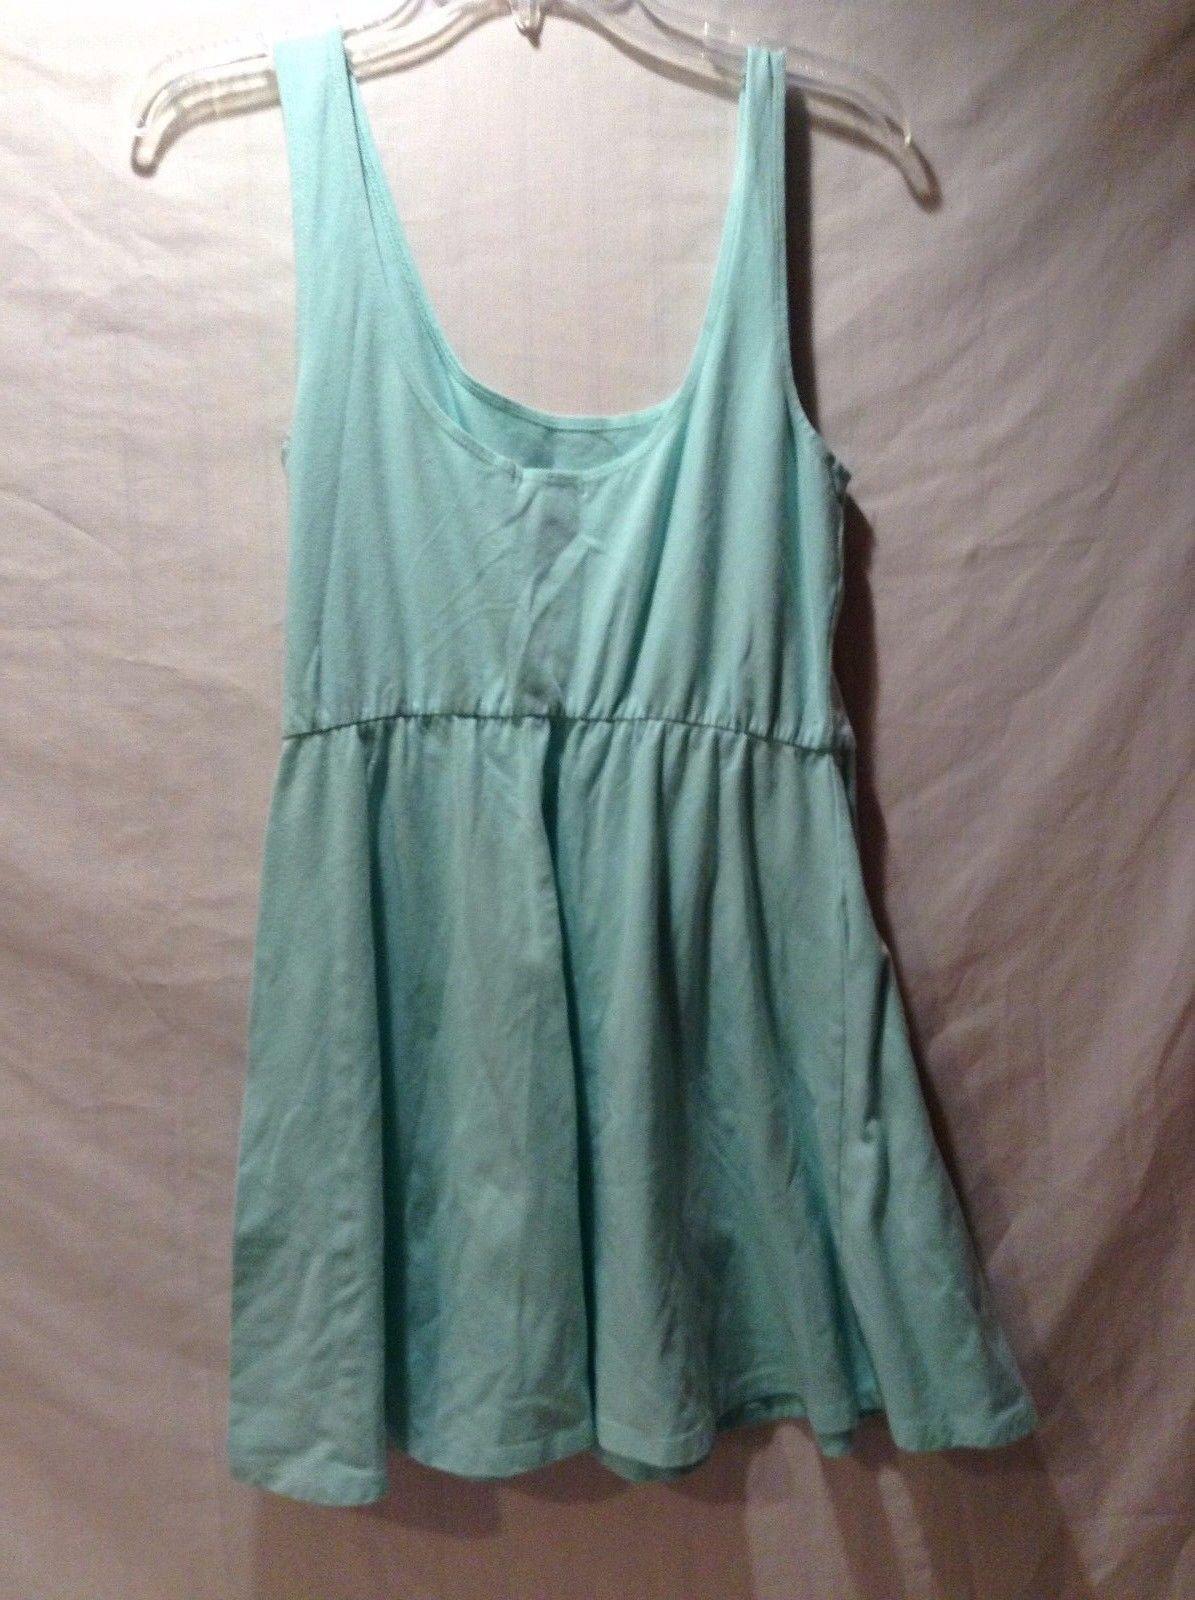 Women's Used Great Condition Charlotte Russe Seafoam Spandex Cotton Dress Size L